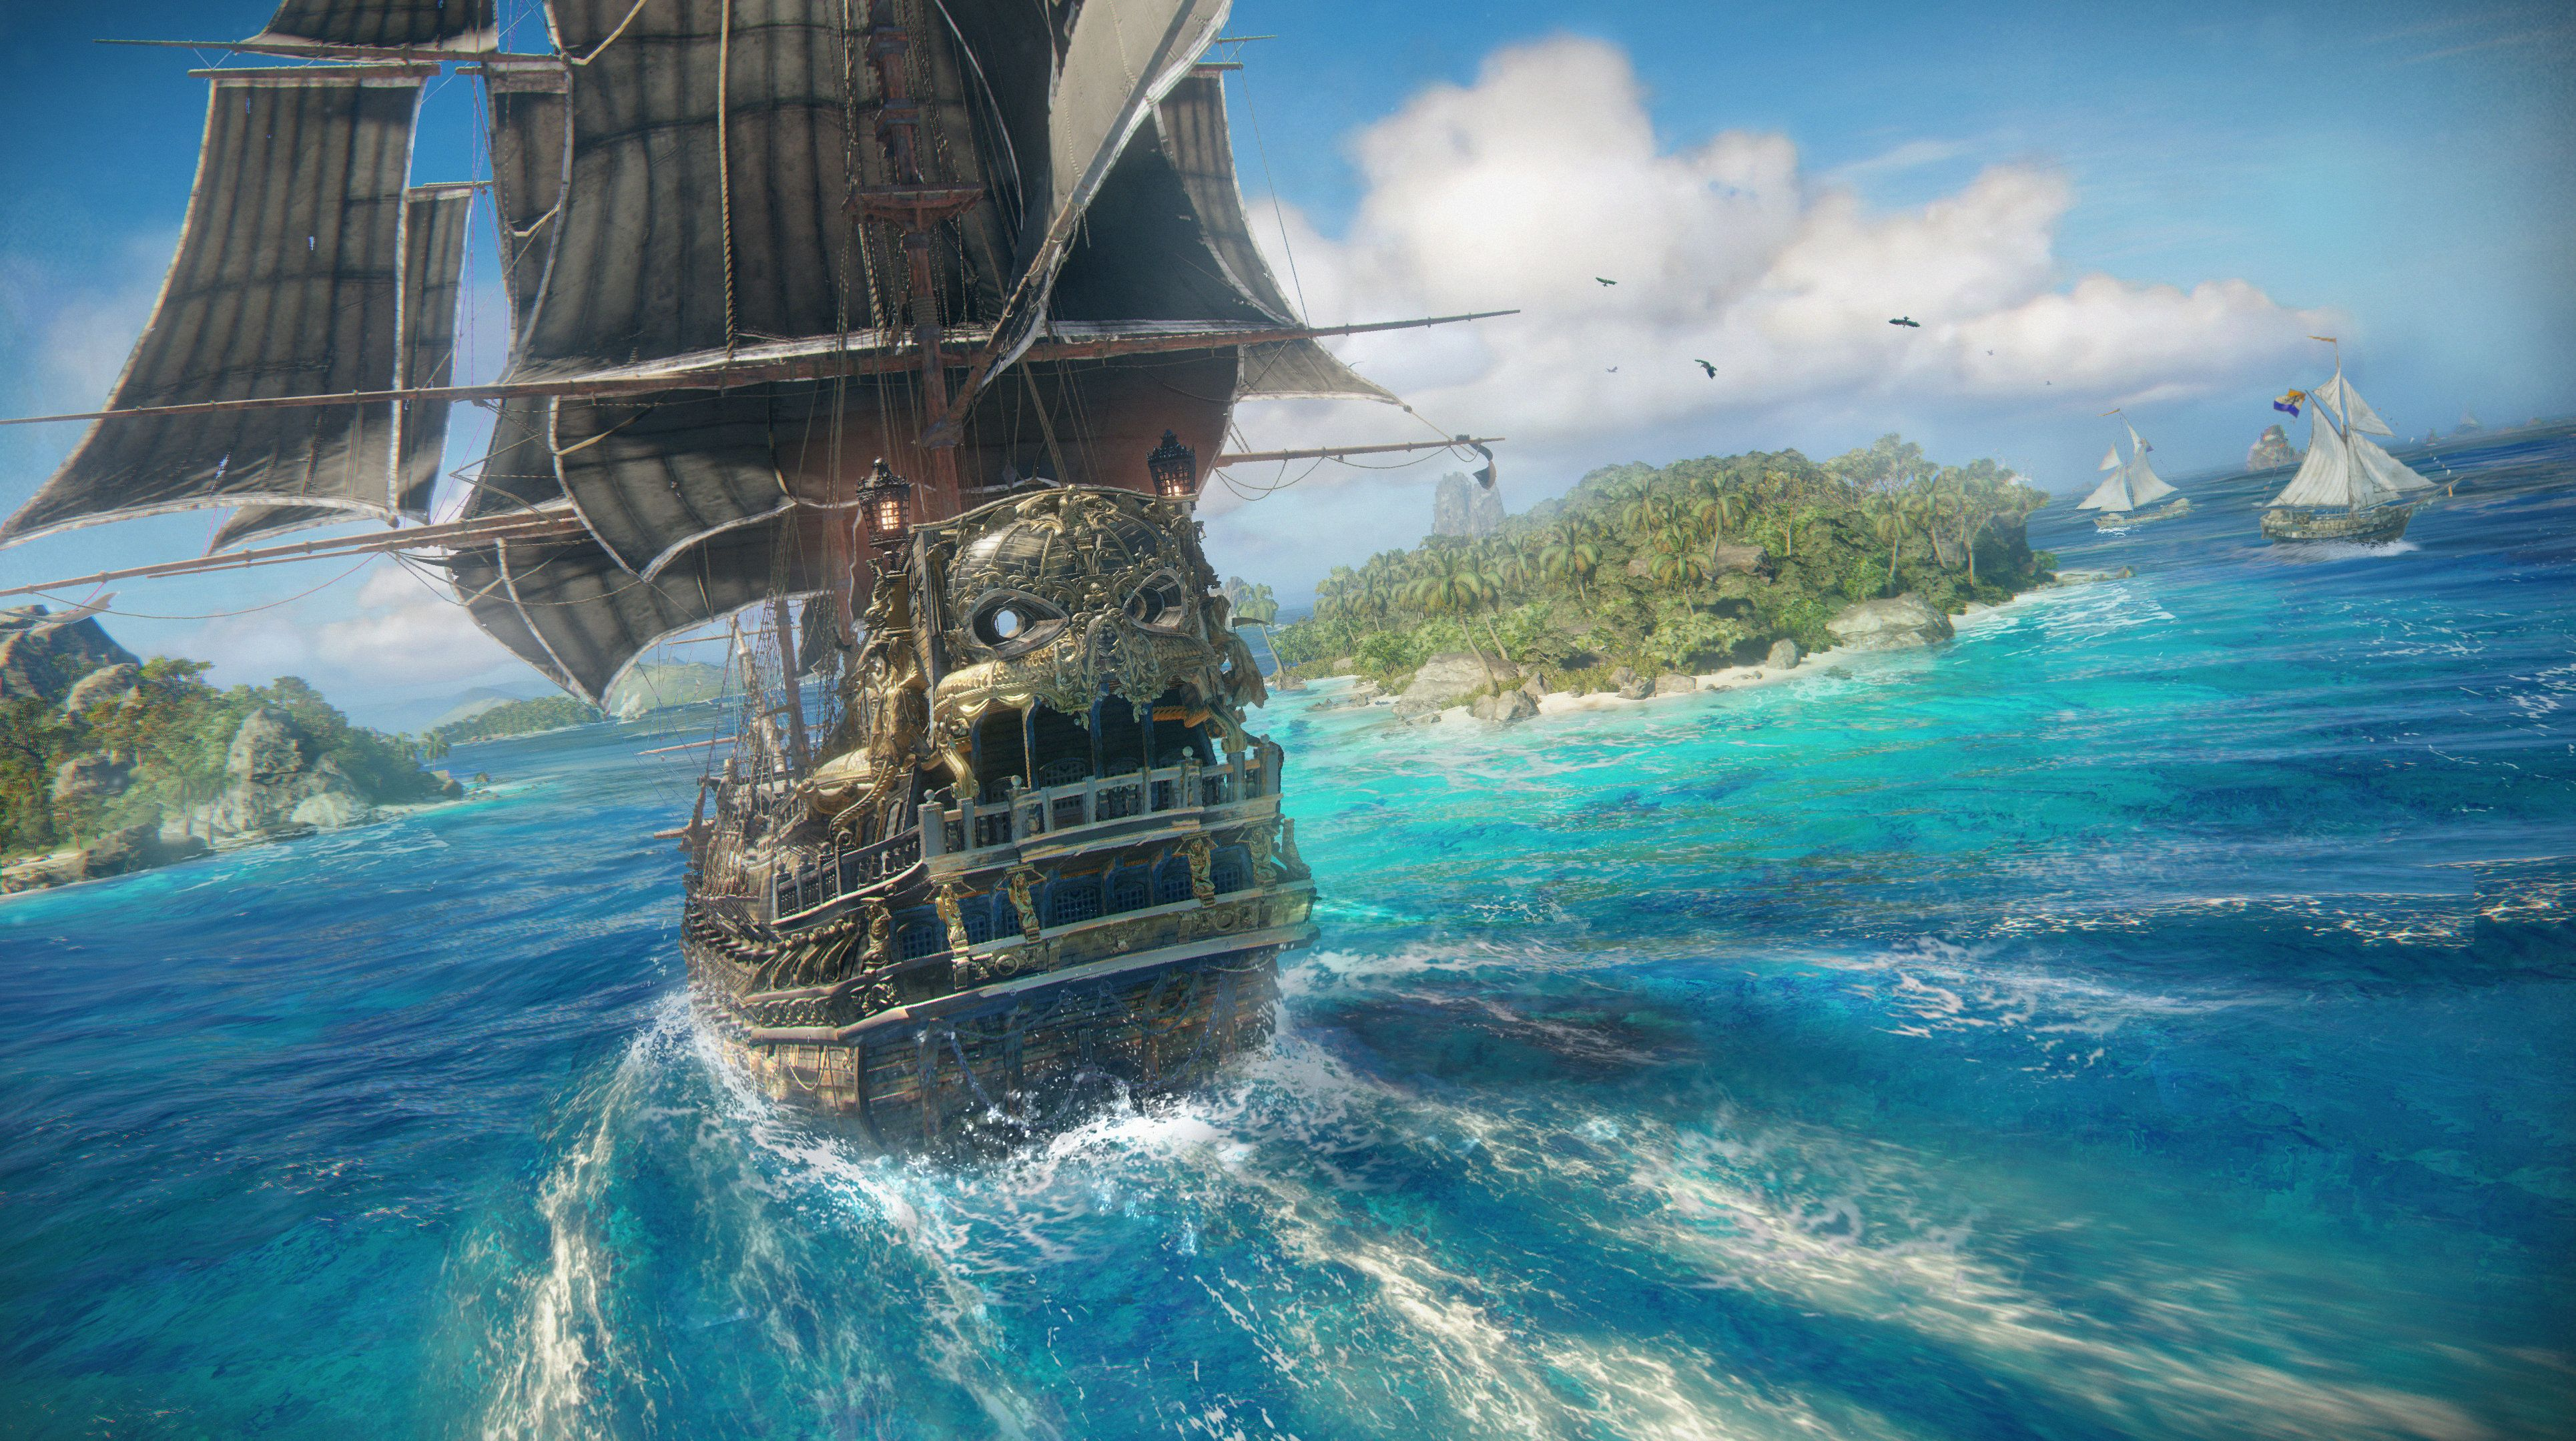 Skull And Bones Is A Stunning Game That Sends You To The Golden Age Of